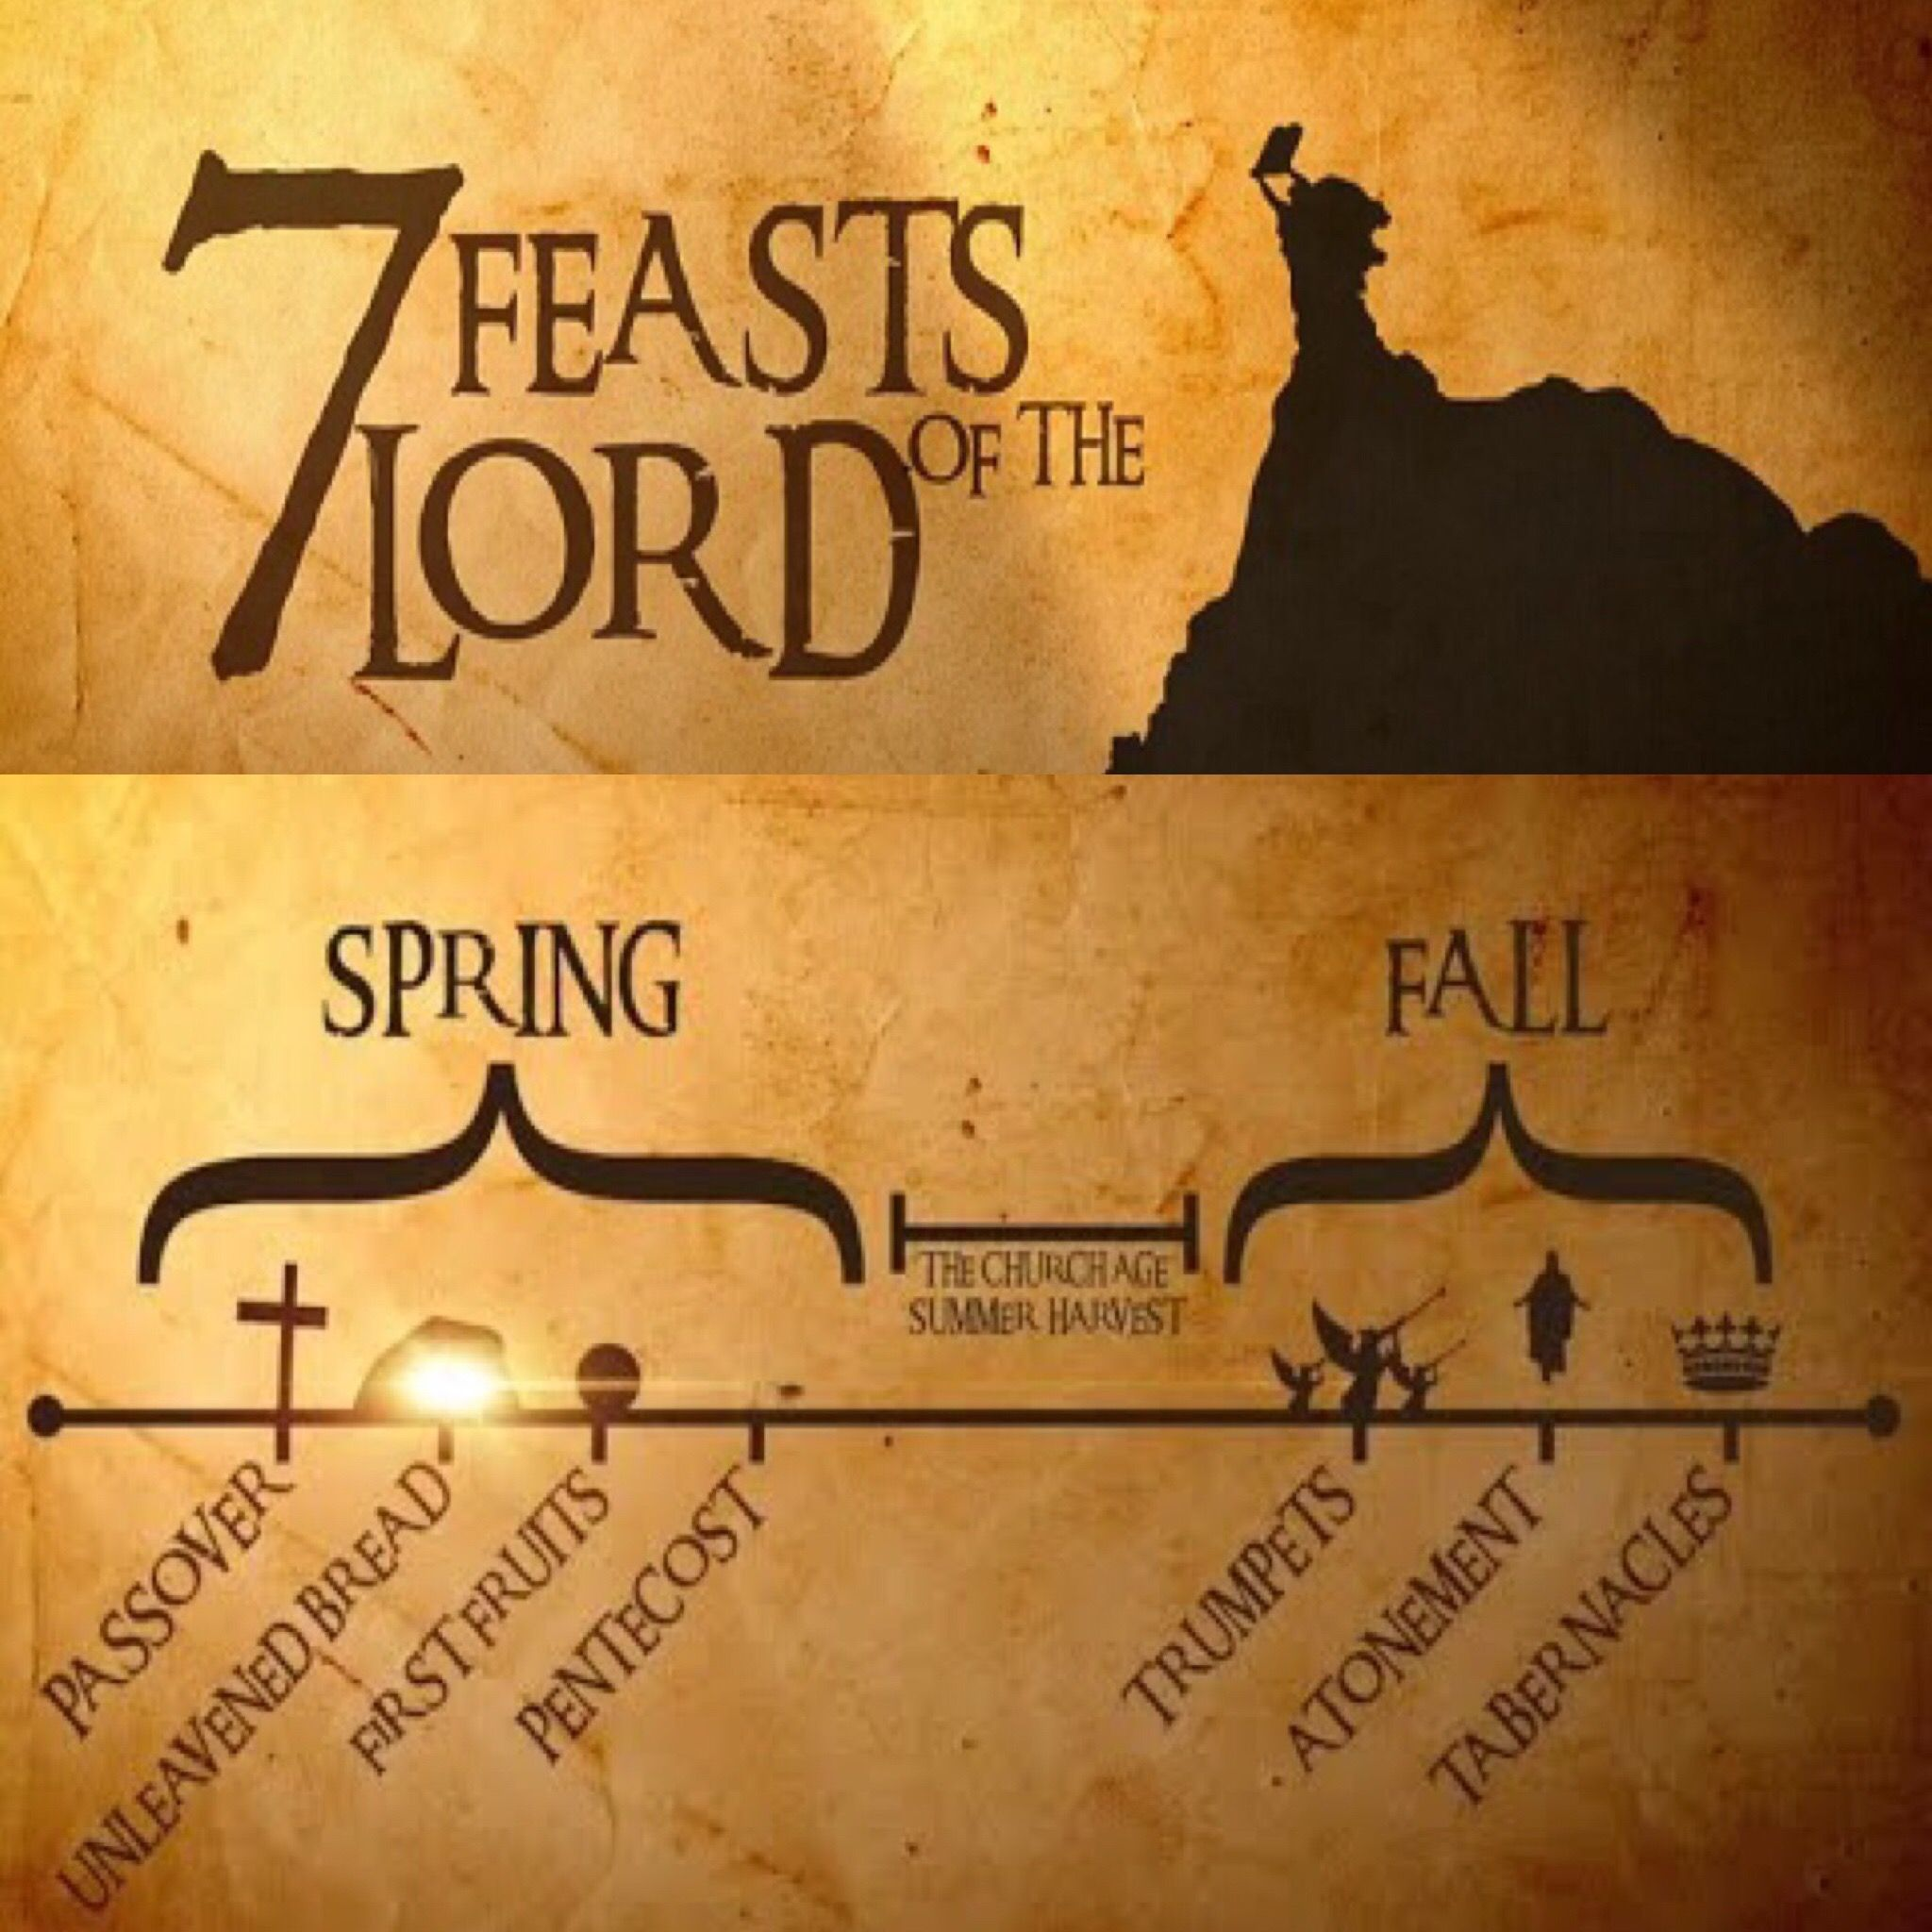 7 Feasts of the Lord | Biblical Feast Days | Feasts of the lord, Sabbath day, Bible study guide